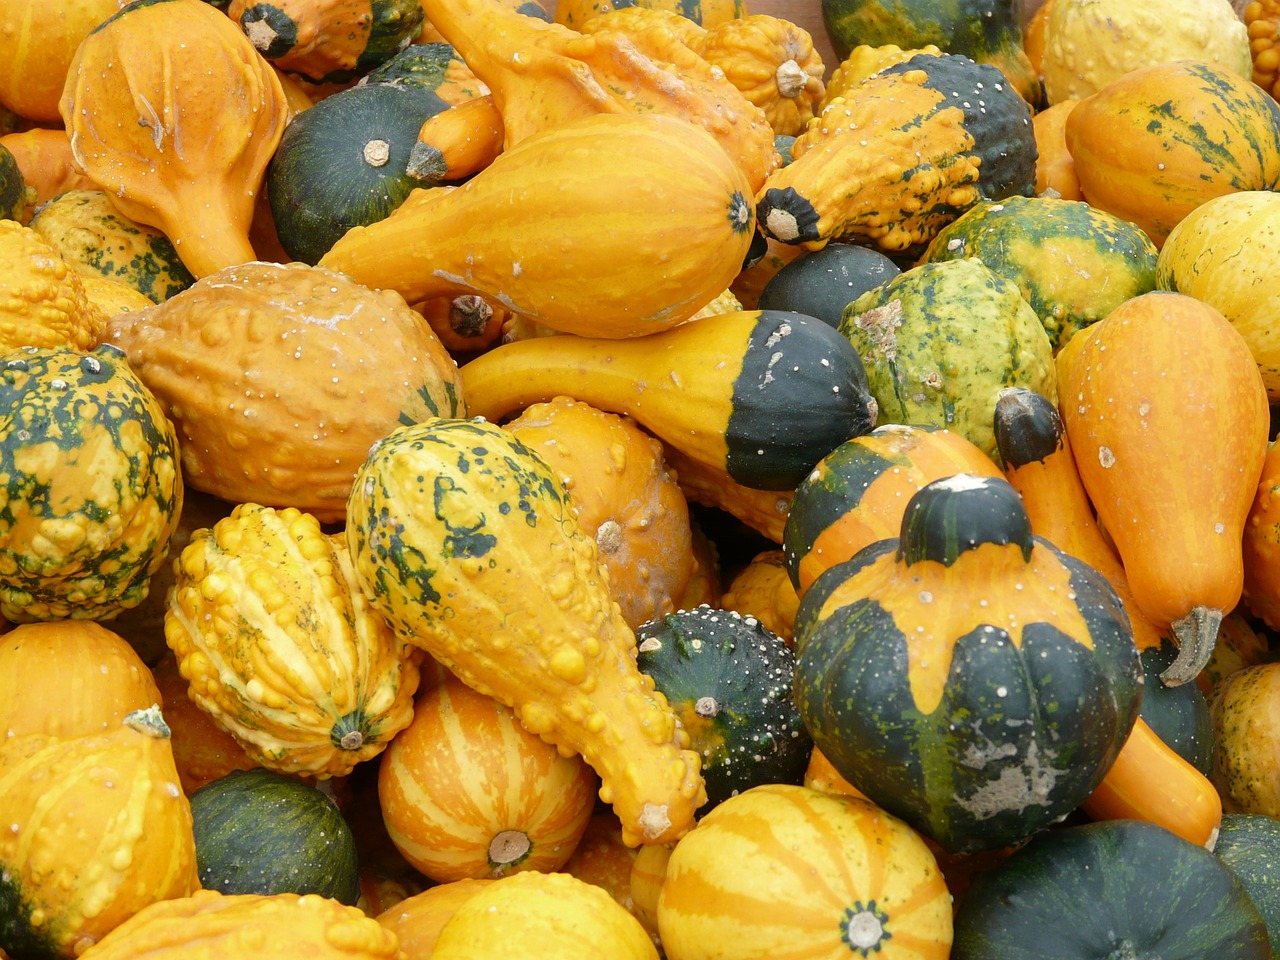 decorative squashes pumpkins yellow free photo